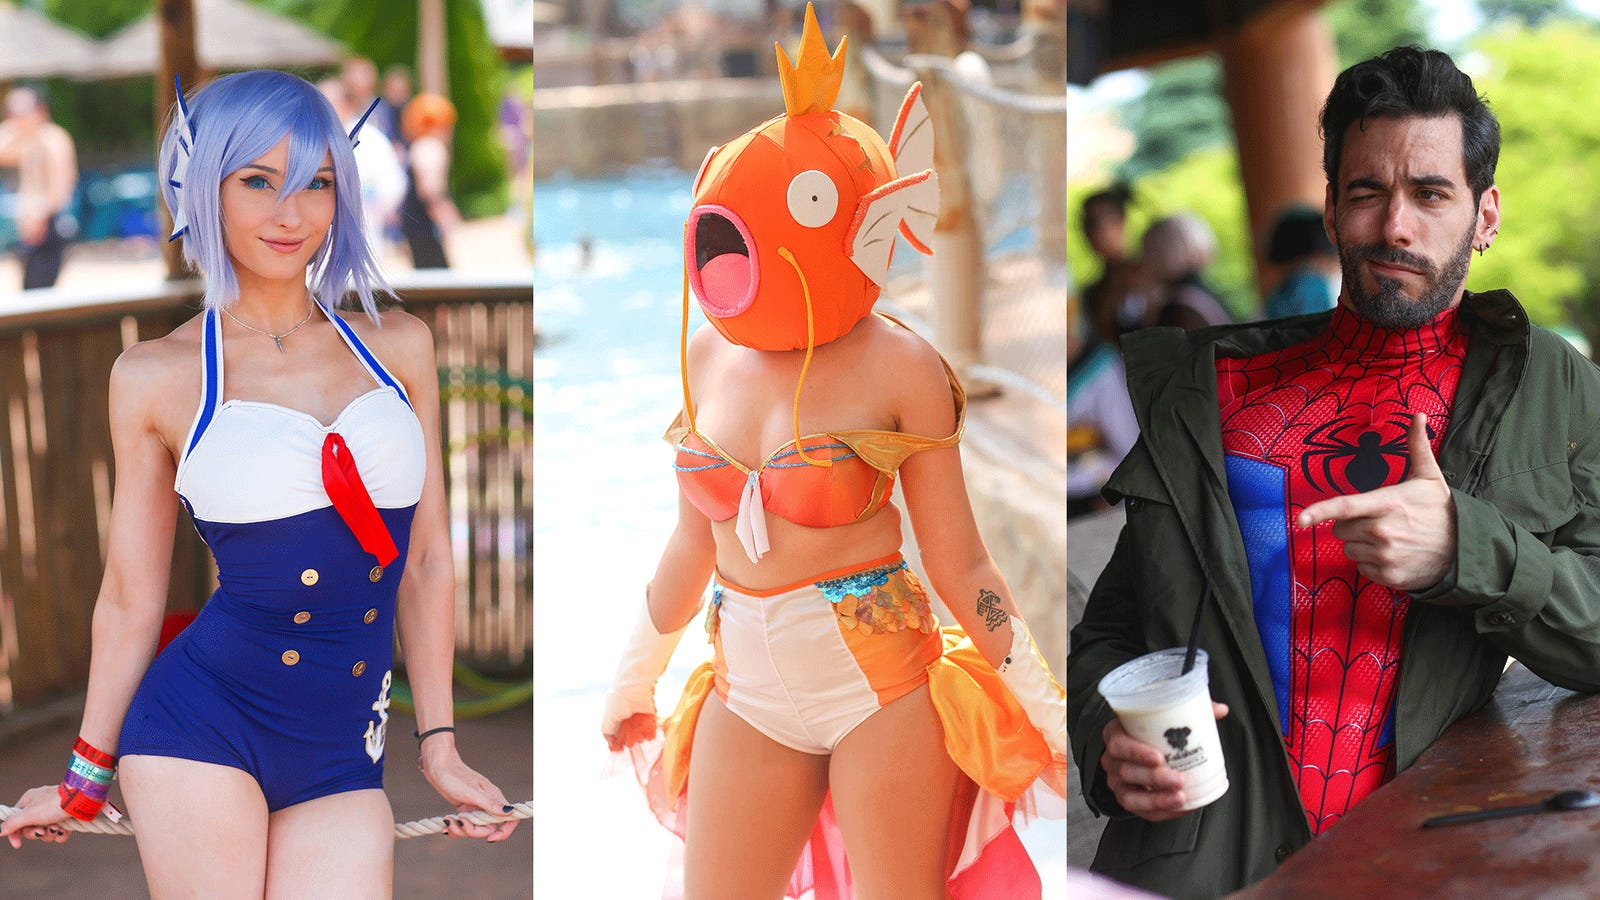 ColossalCon 2019, aka Cosplay's Great Pool Party